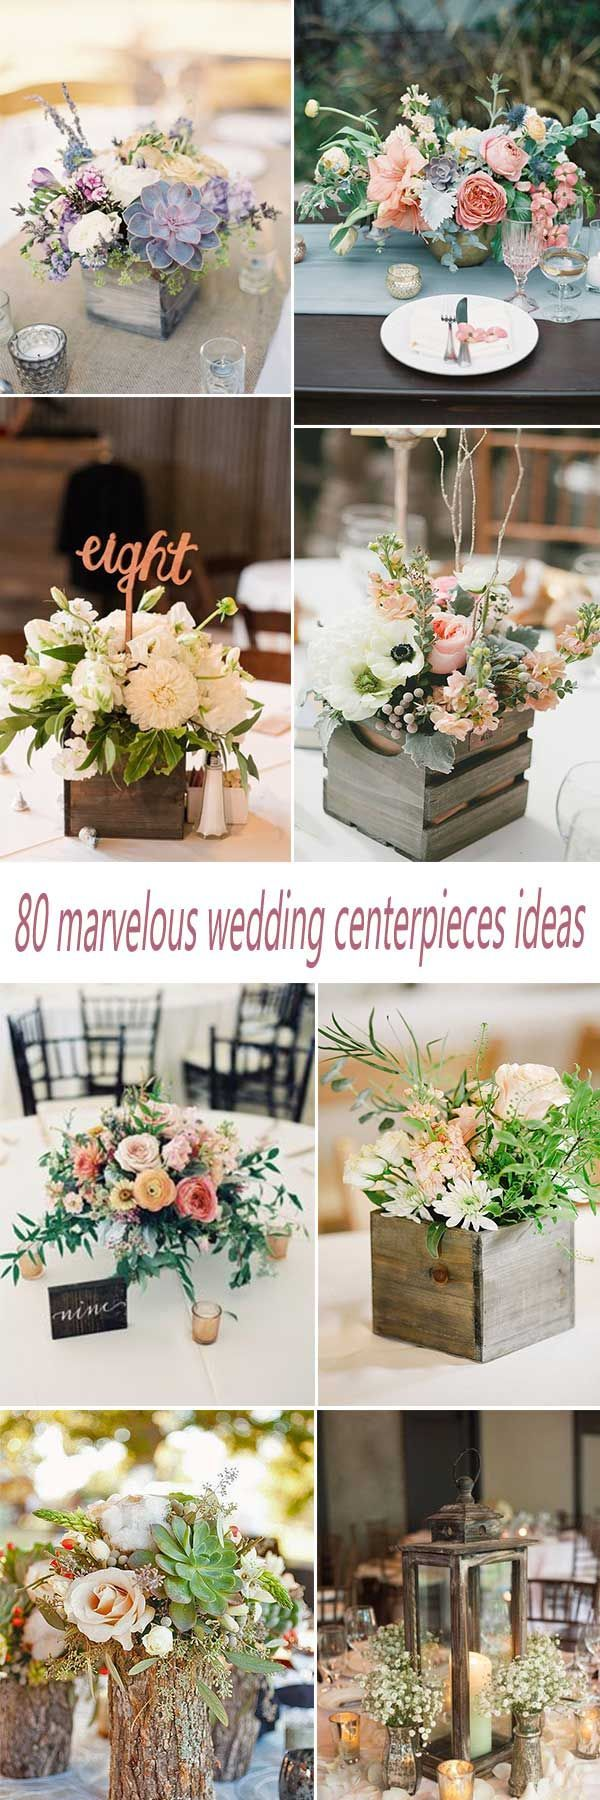 Diy rustic wedding decor ideas   MARVELOUS DIY RUSTIC u CHEAP WEDDING CENTERPIECE IDEAS  Wedding